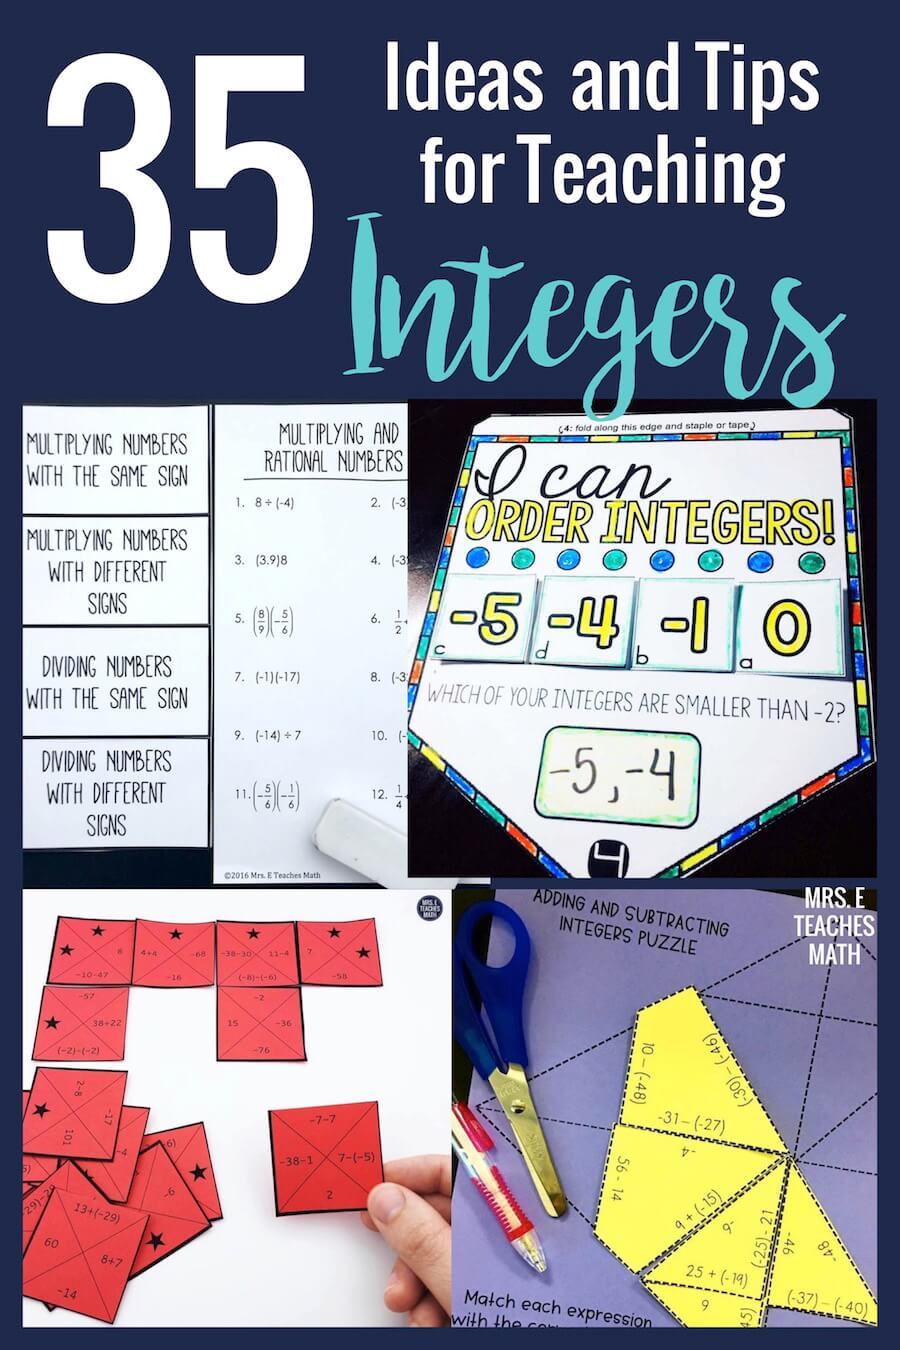 hight resolution of 35+ Ideas and Tips for Teaching Integers   Mrs. E Teaches Math